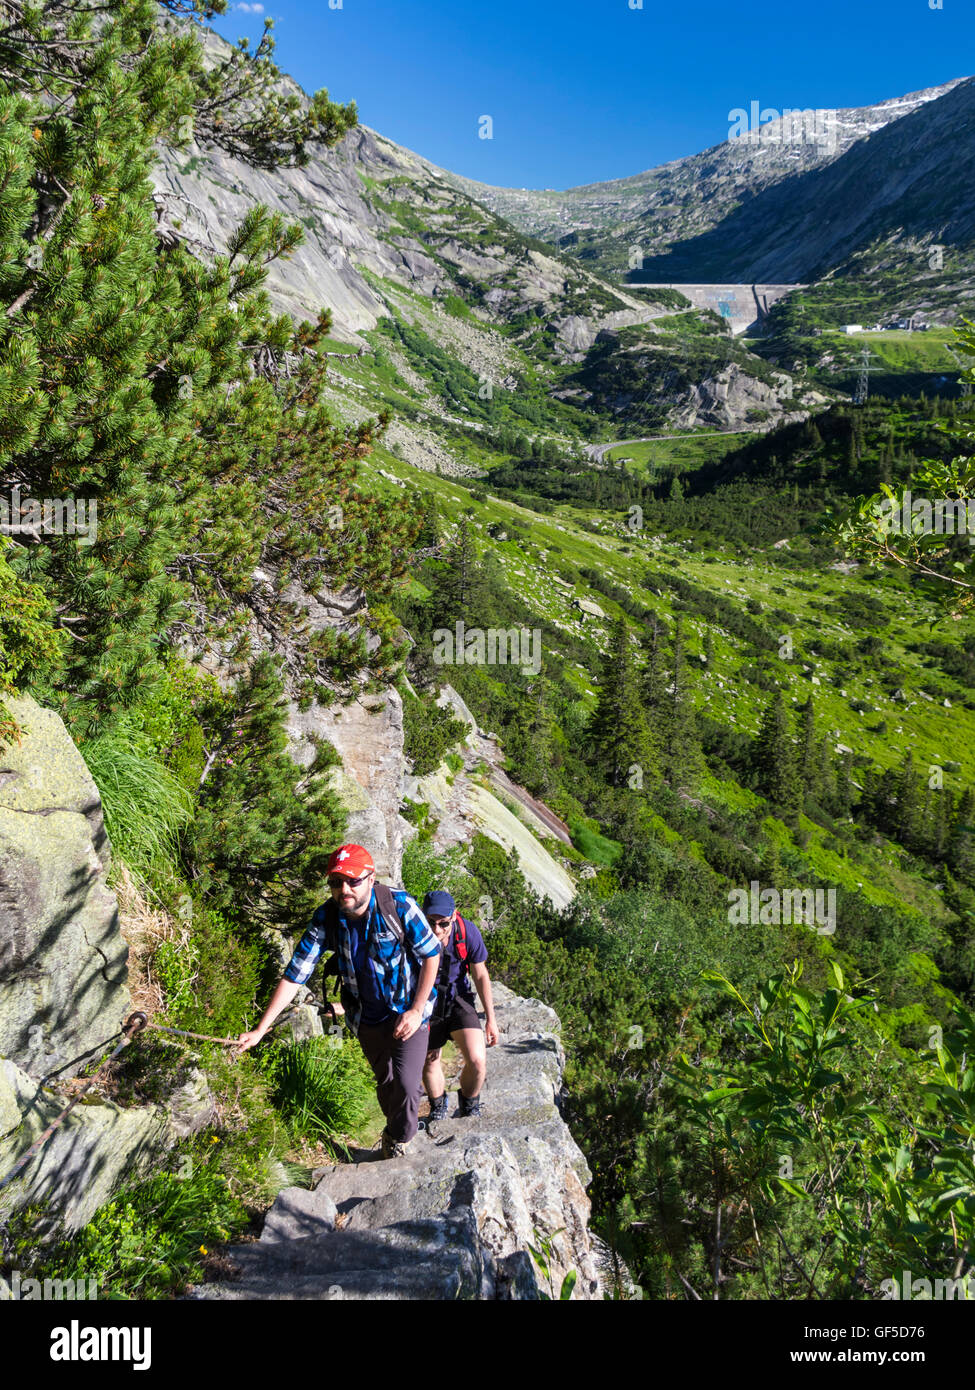 Two male hikers in the Grimsel region of the Swiss Alps, ascending on an exposed and steep stair-like trail. - Stock Image